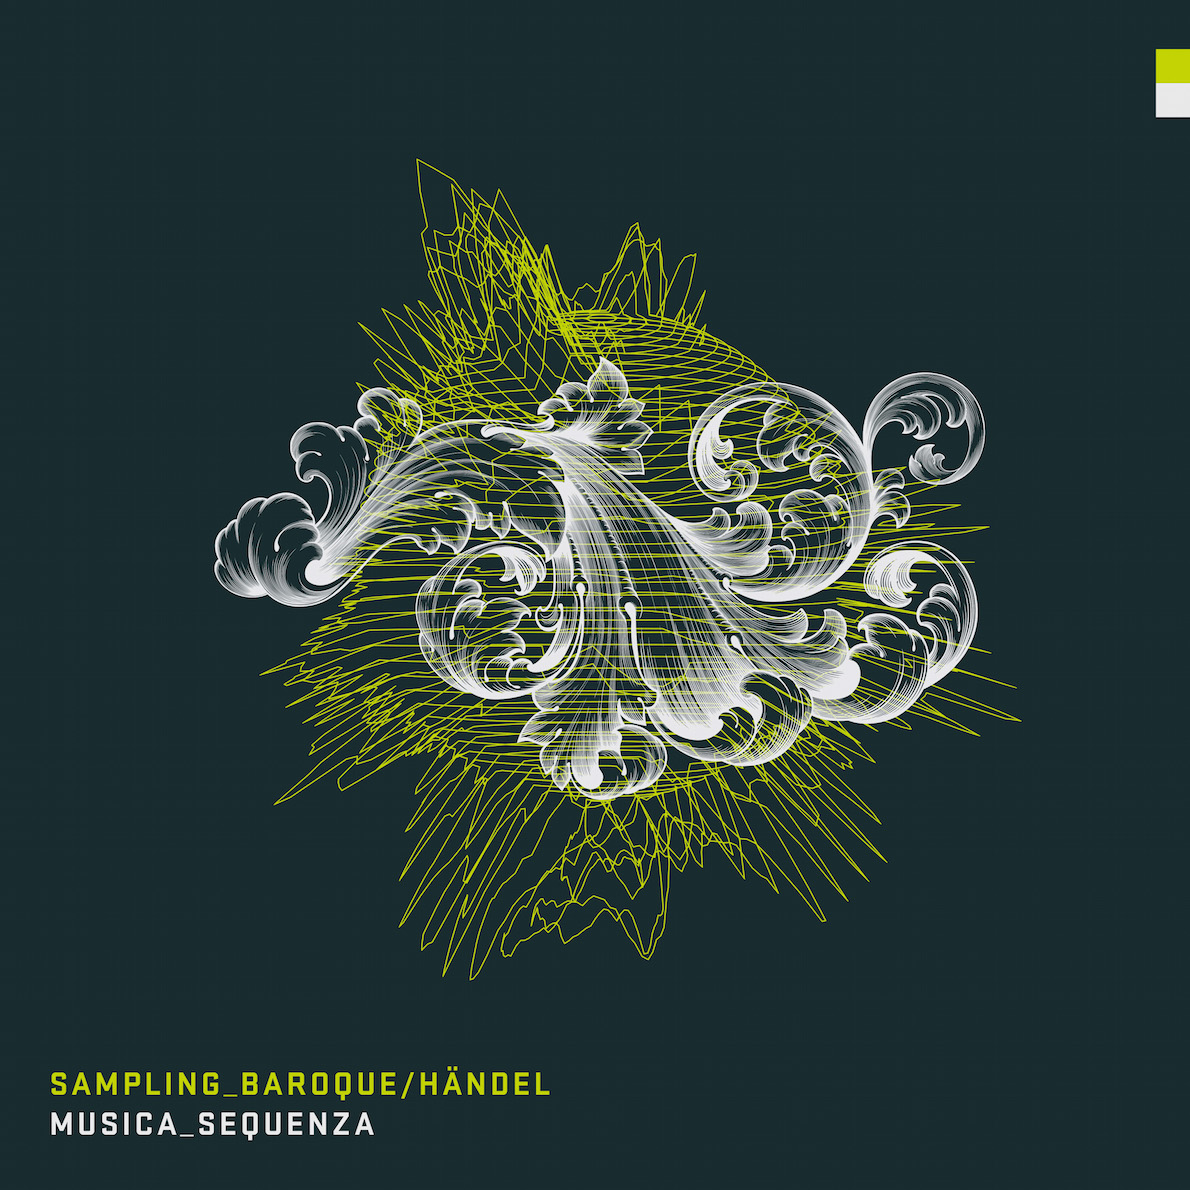 SAMPLING BAROQUE HANDEL VINYL